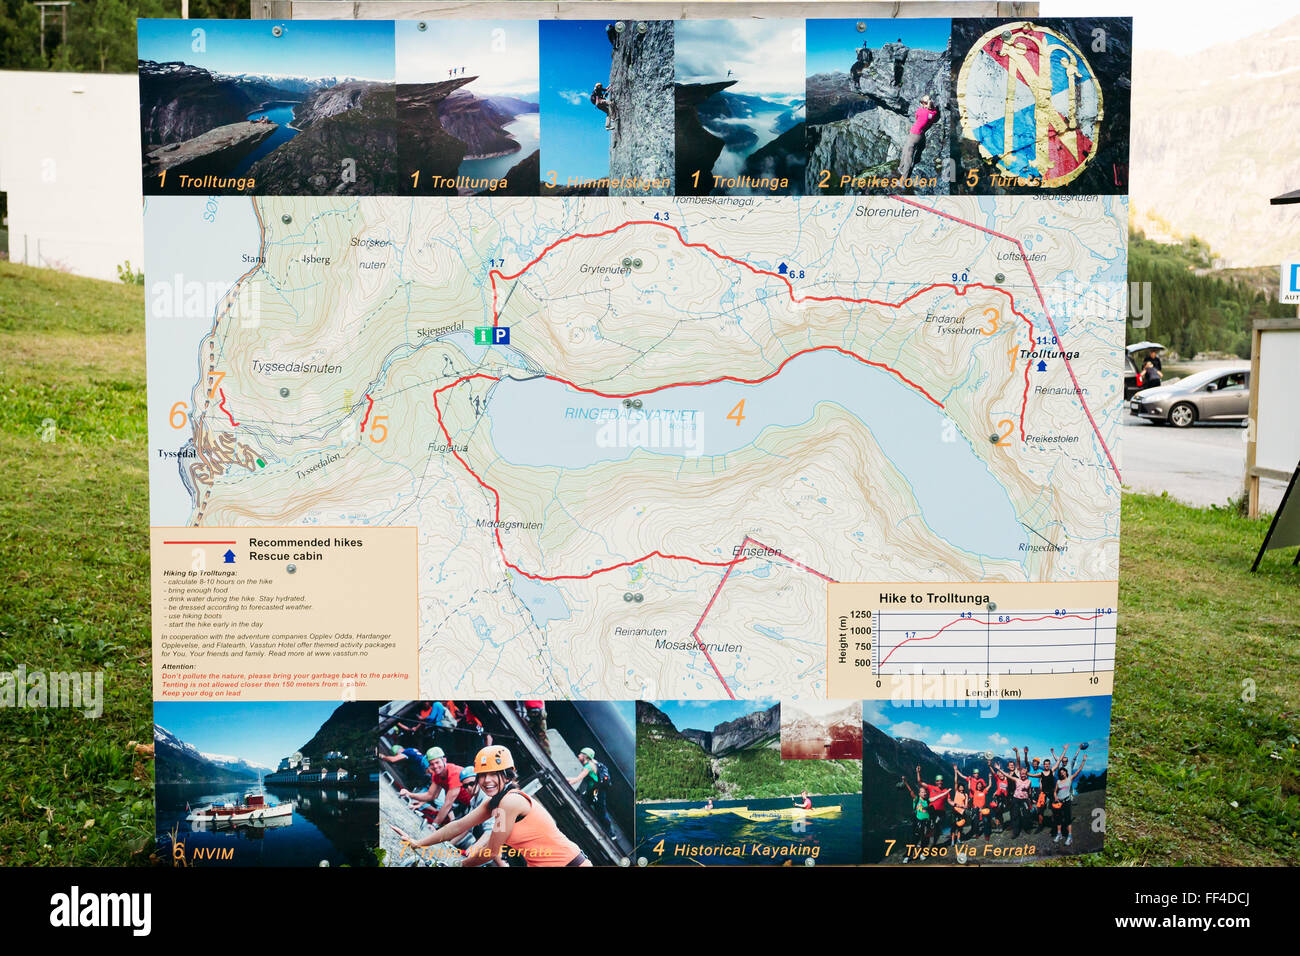 Tyssedal, Norway - August 4, 2014:   Route map near staring point to the mountain attraction - Trolltunga or Troll's Stock Photo